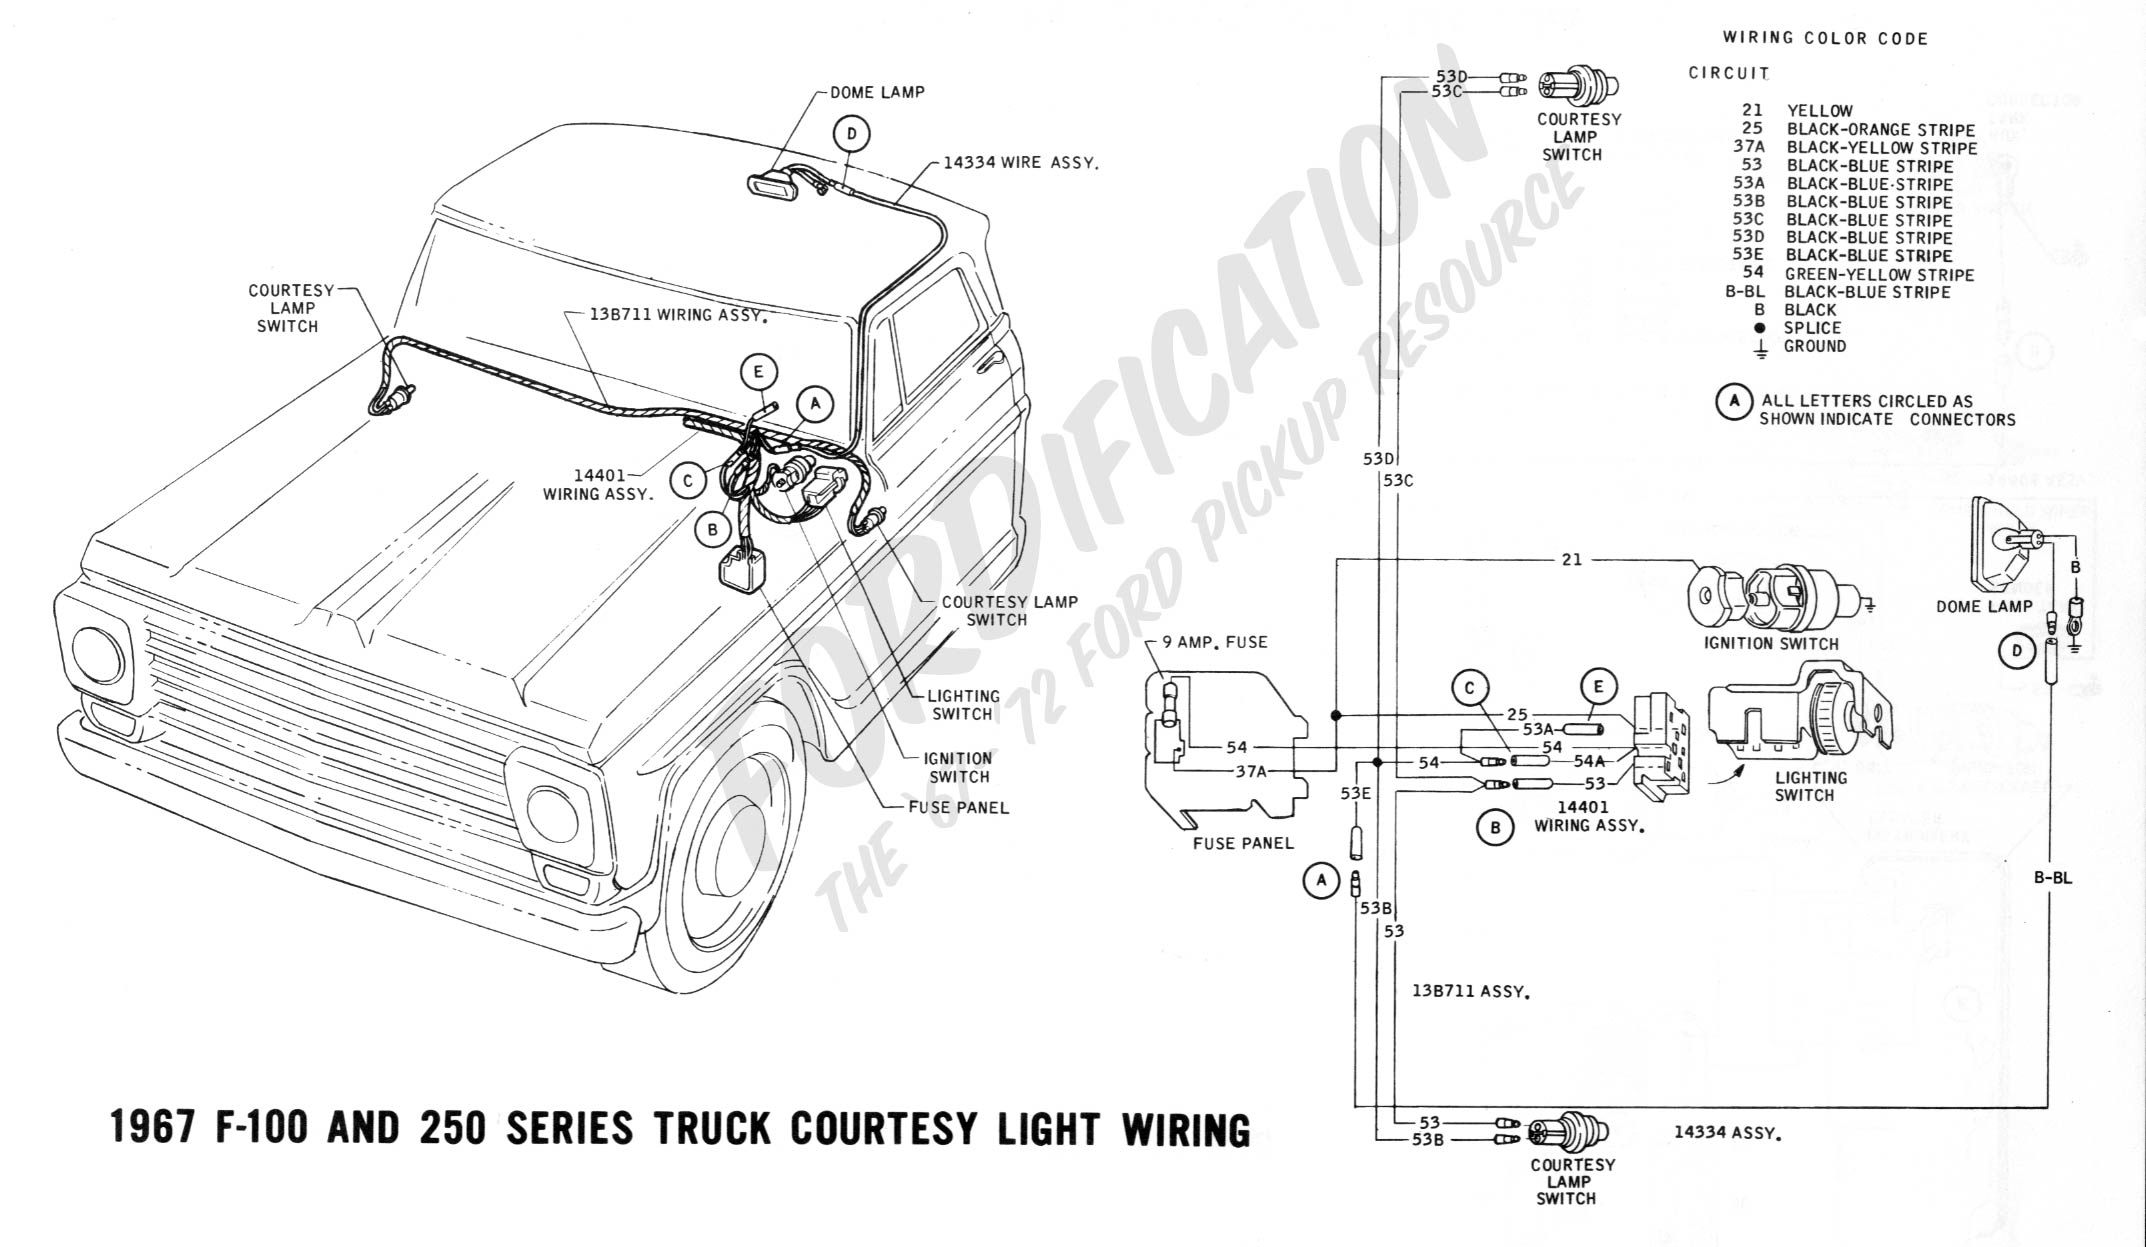 1977 ford 351 wiring diagram on ford truck technical drawings and schematics section h wiring 1-Wire Alternator Wiring Diagram 351 Cleveland Engine Horsepower